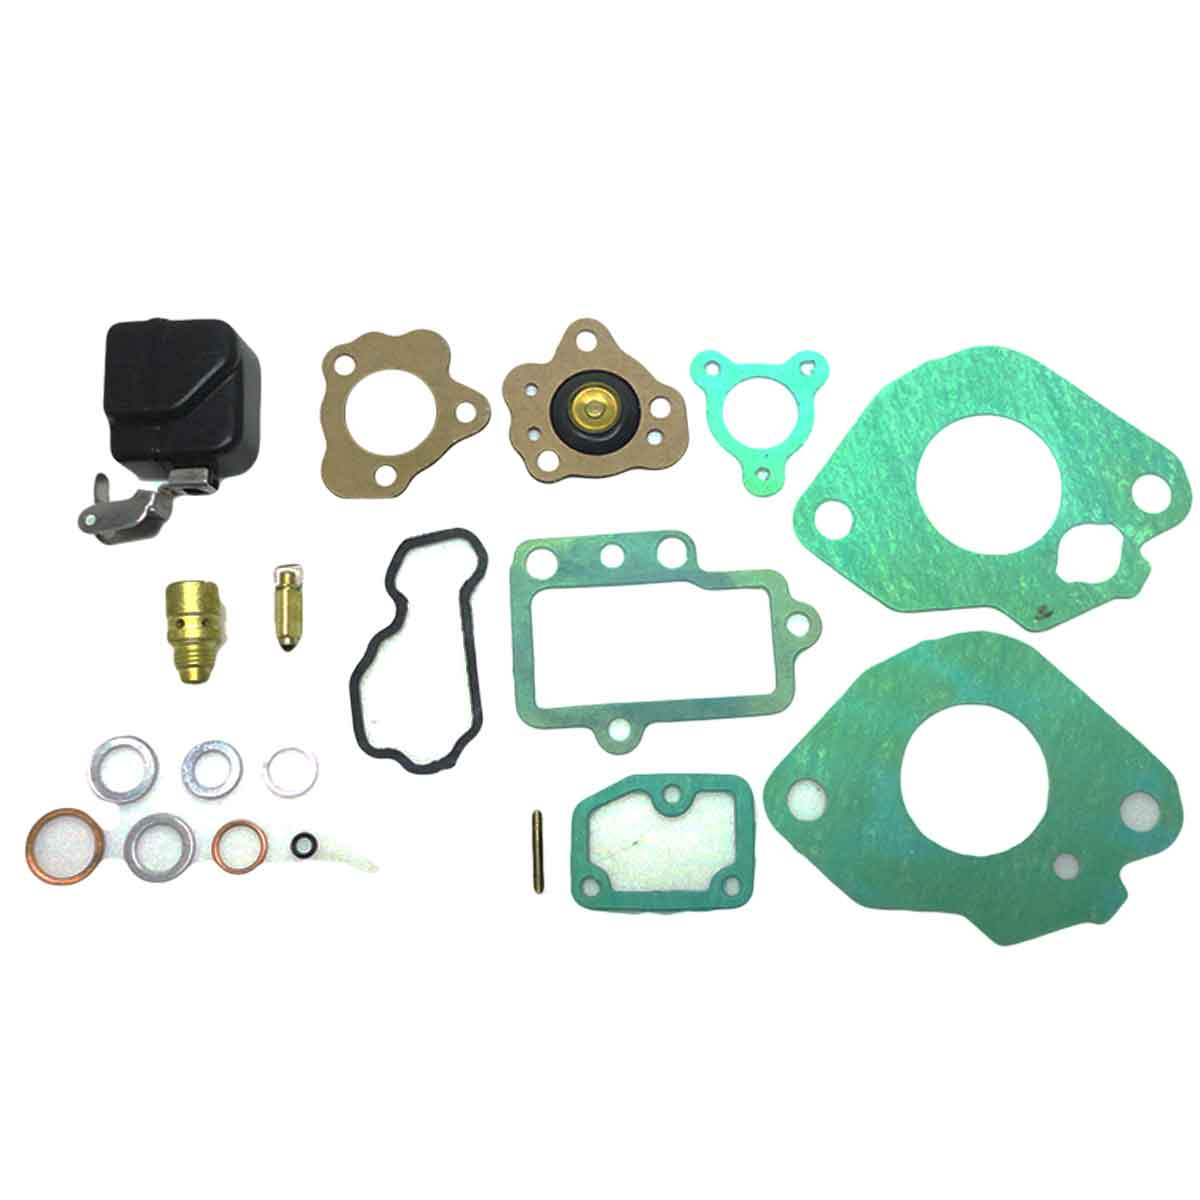 kit Completo Carburador Asia Towner Coach Panel Truck Glass